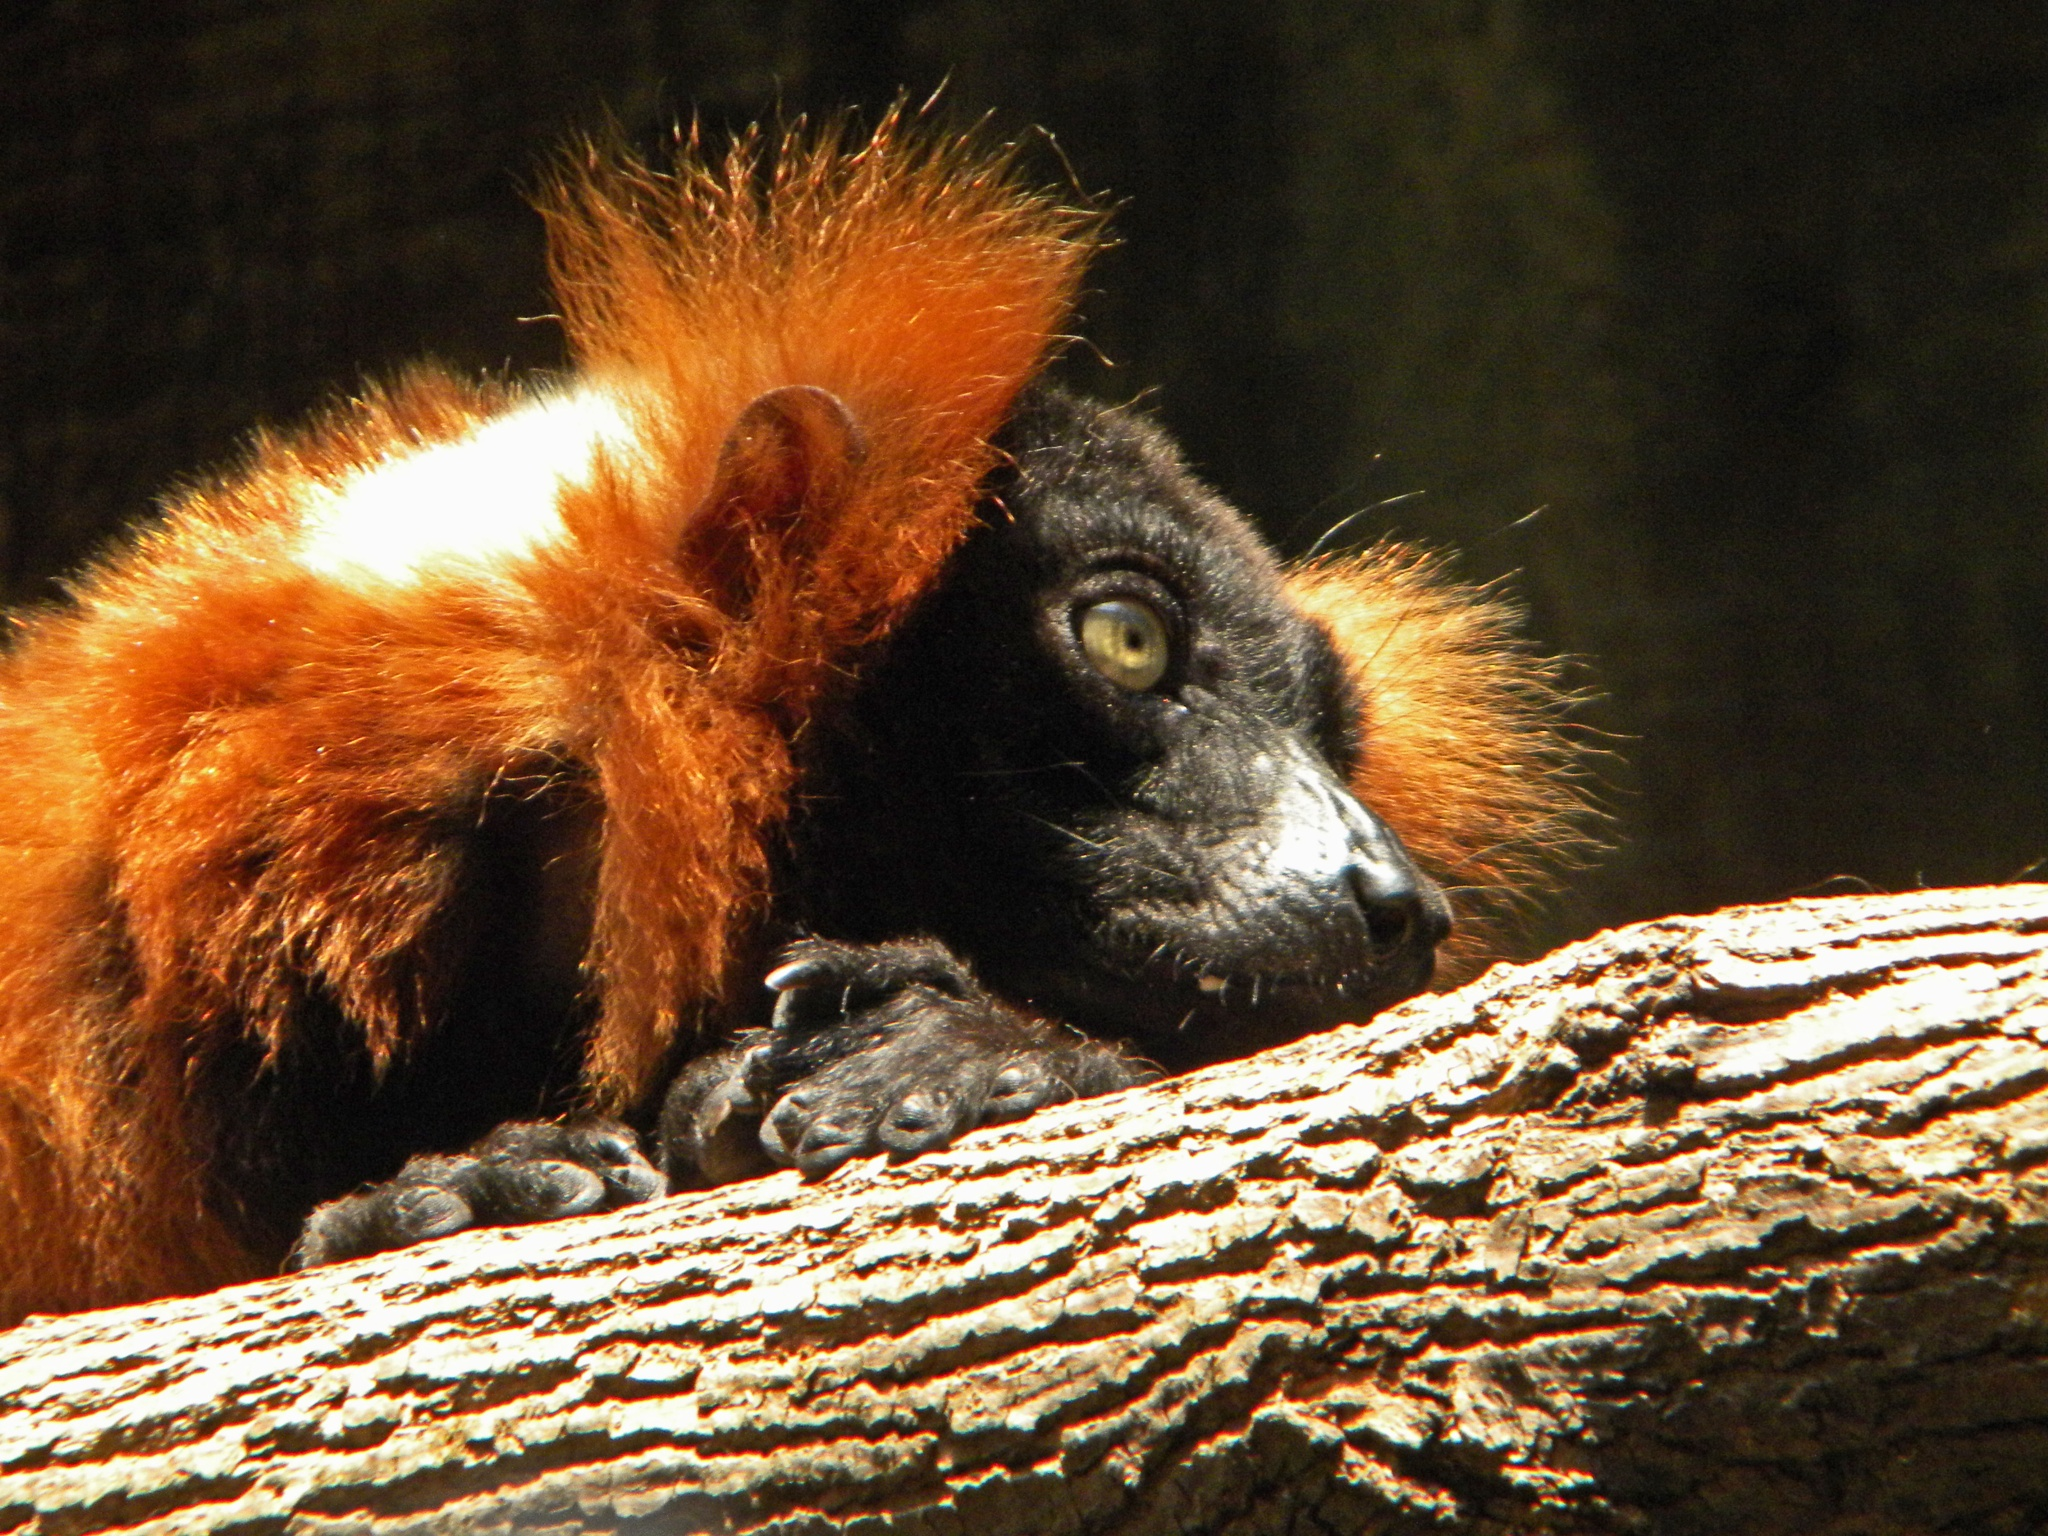 Red Ruffed Lemur by Phillip W. Strunk